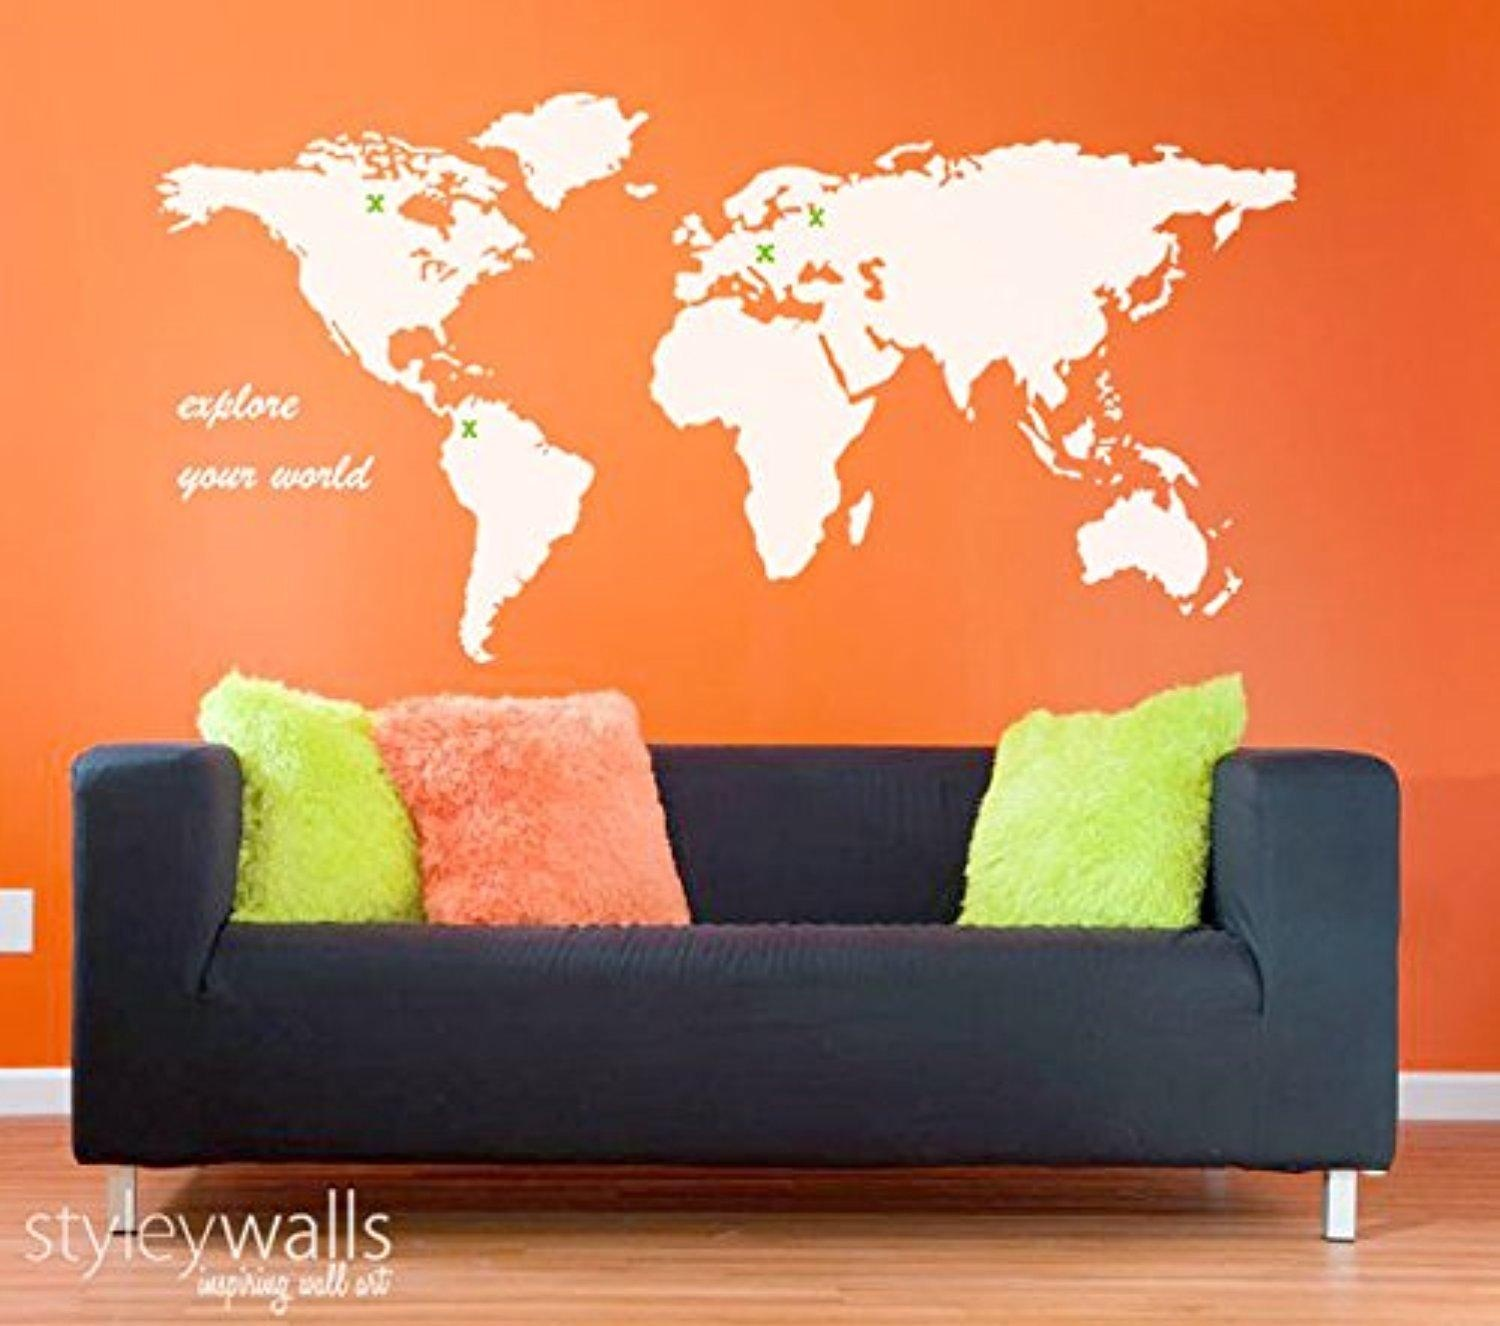 online store world map wall decal for living room home decor world map wall decal for living room home decor world map wall sticker for office